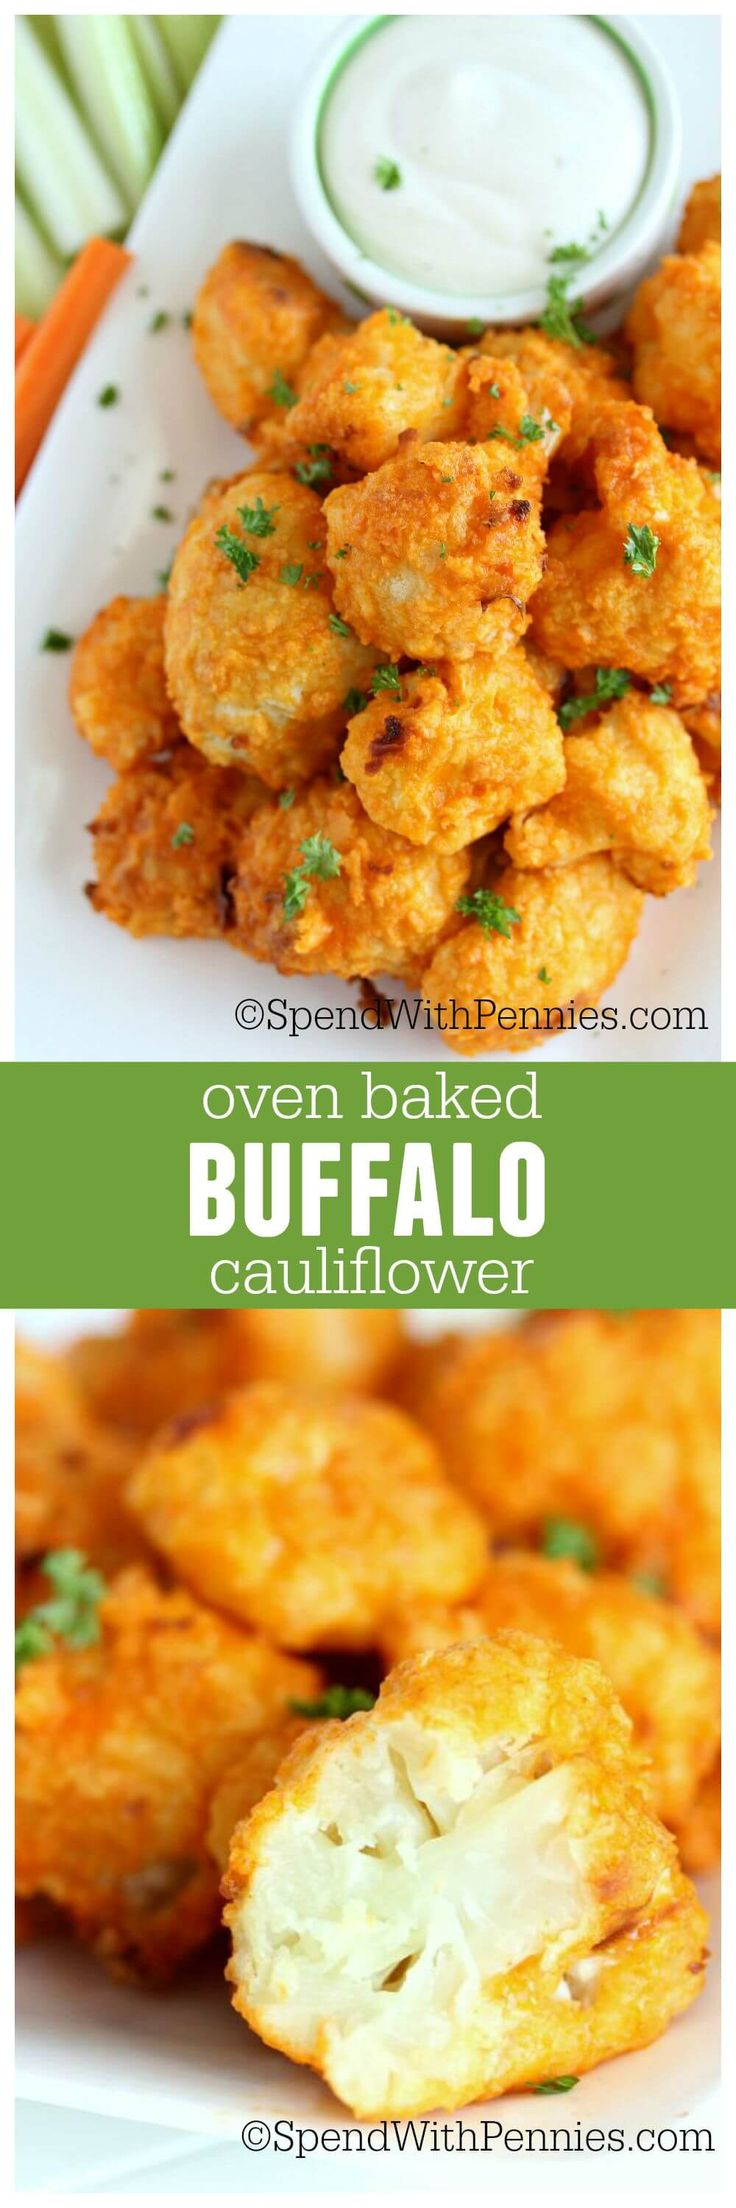 Oven Baked Buffalo Cauliflower - Tender morsels of cauliflower baked in a crispy crust and then loaded with buffalo sauce! If you like wings, you love this leaner tastier snack!